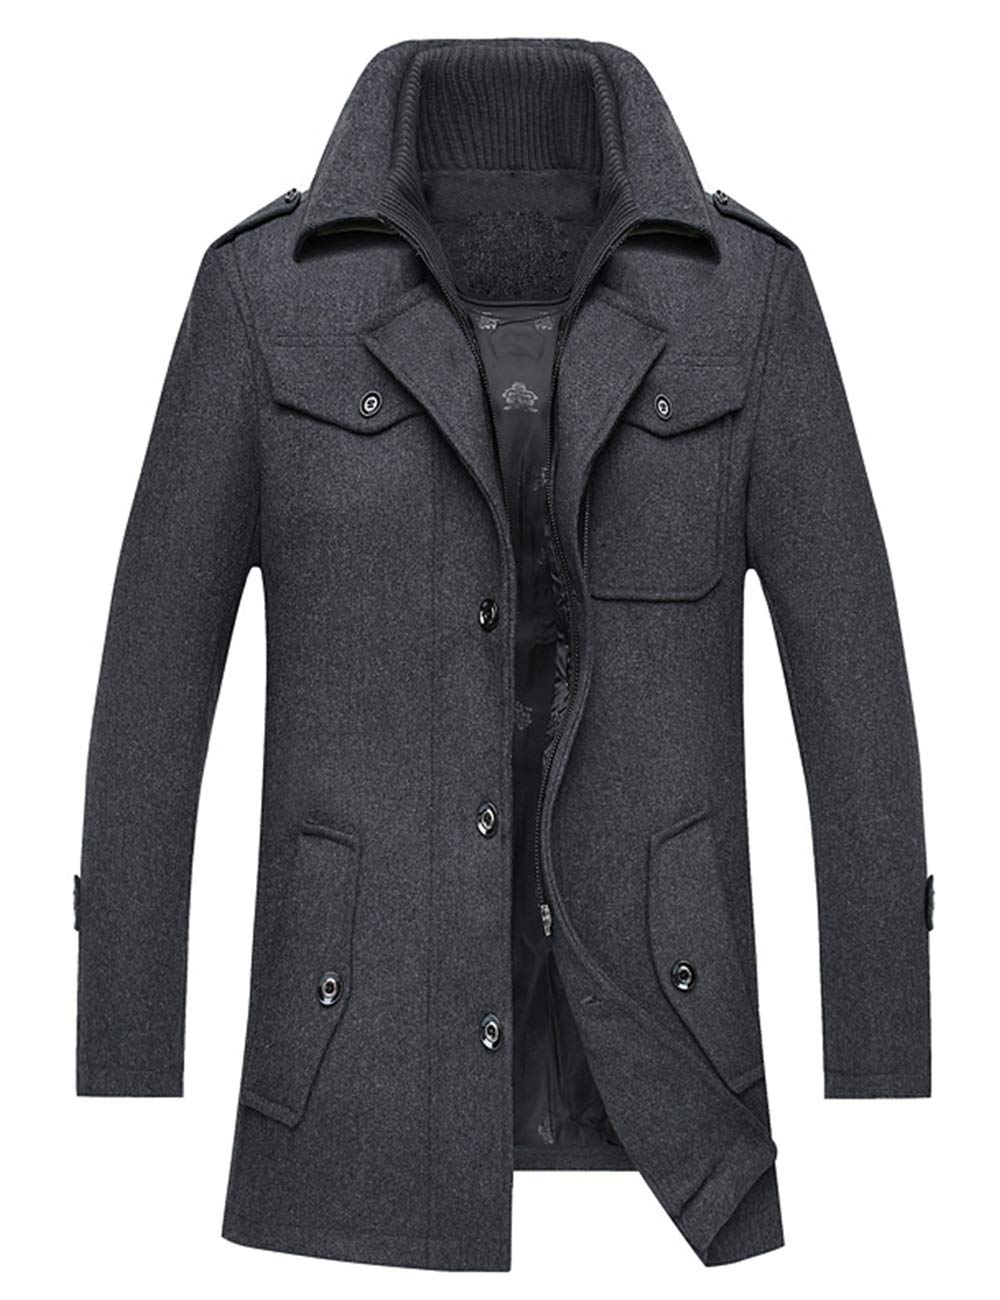 ZENTHACE Men's Winter Solid Single Breasted Thicken Warm Wool Blend Pea Coat Gray L by ZENTHACE